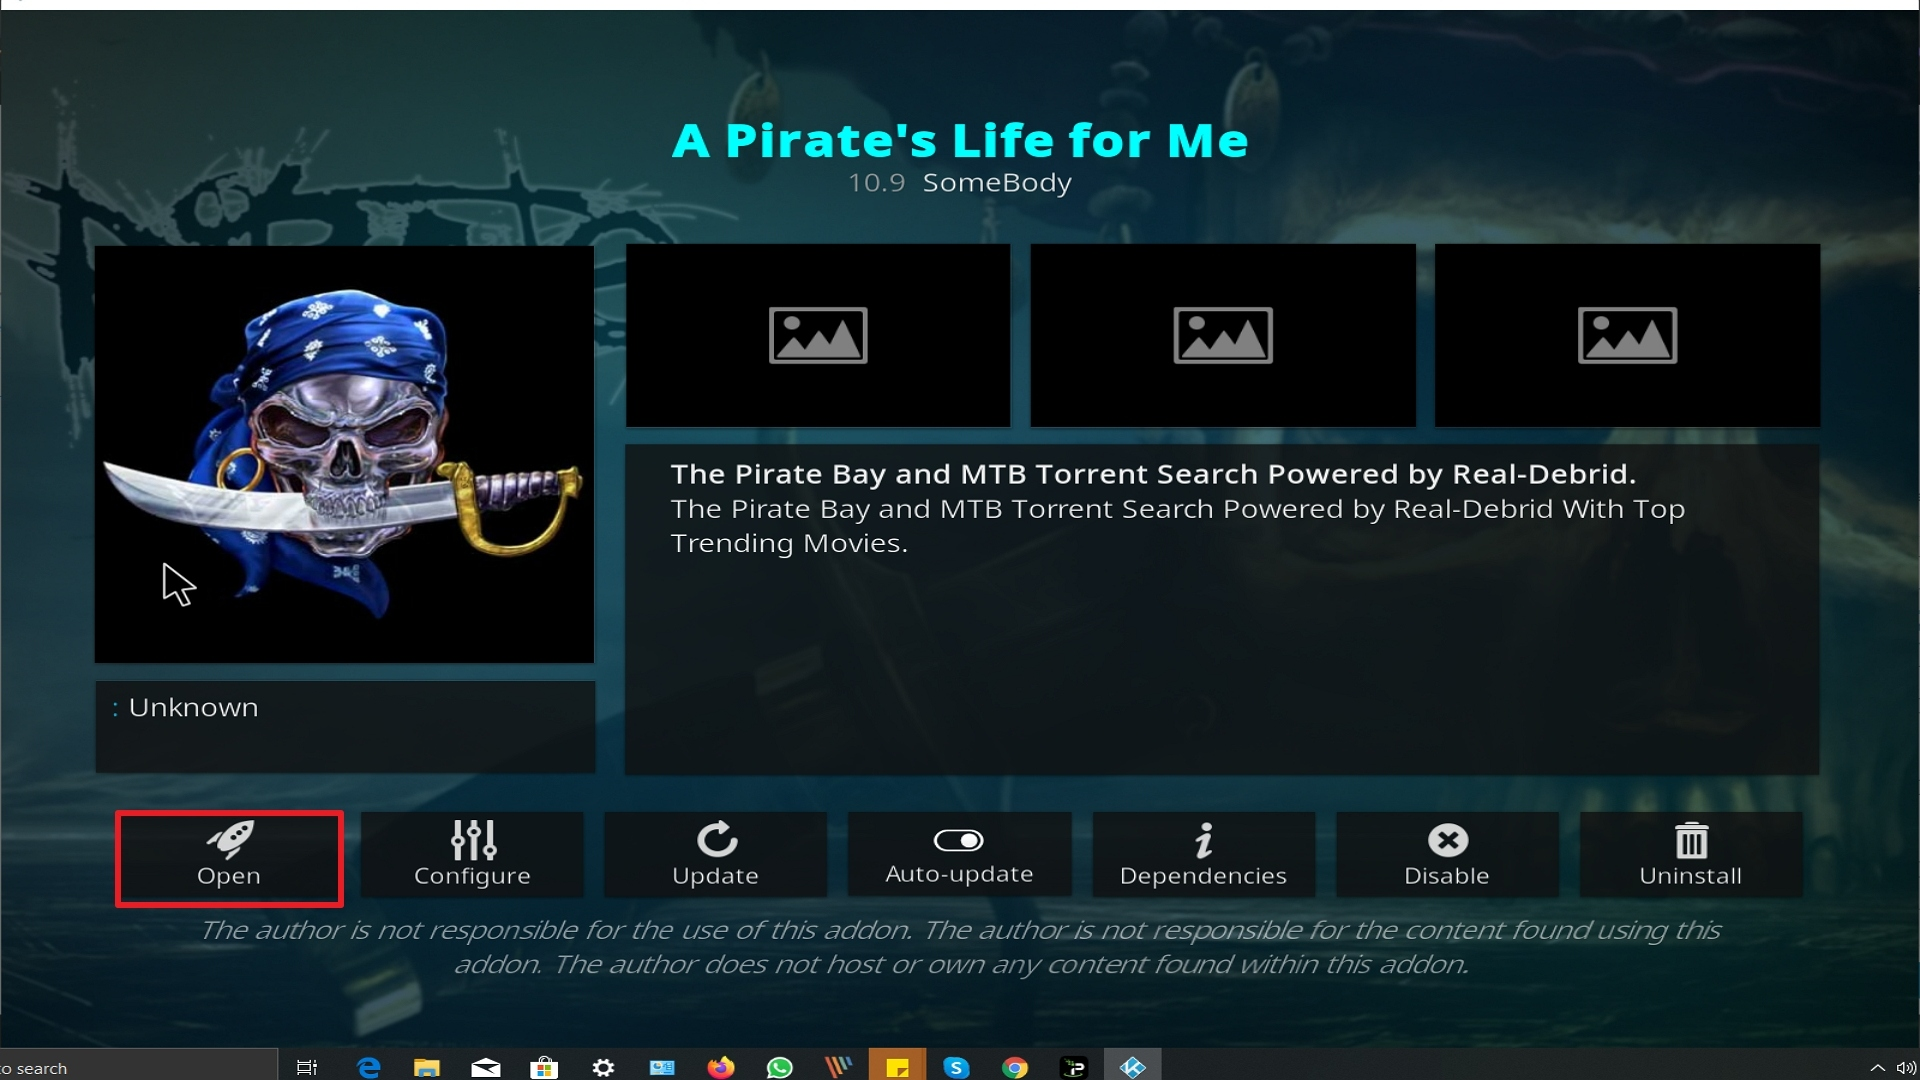 Step 26 Installing A Pirate's Life For Me addon on Kodi